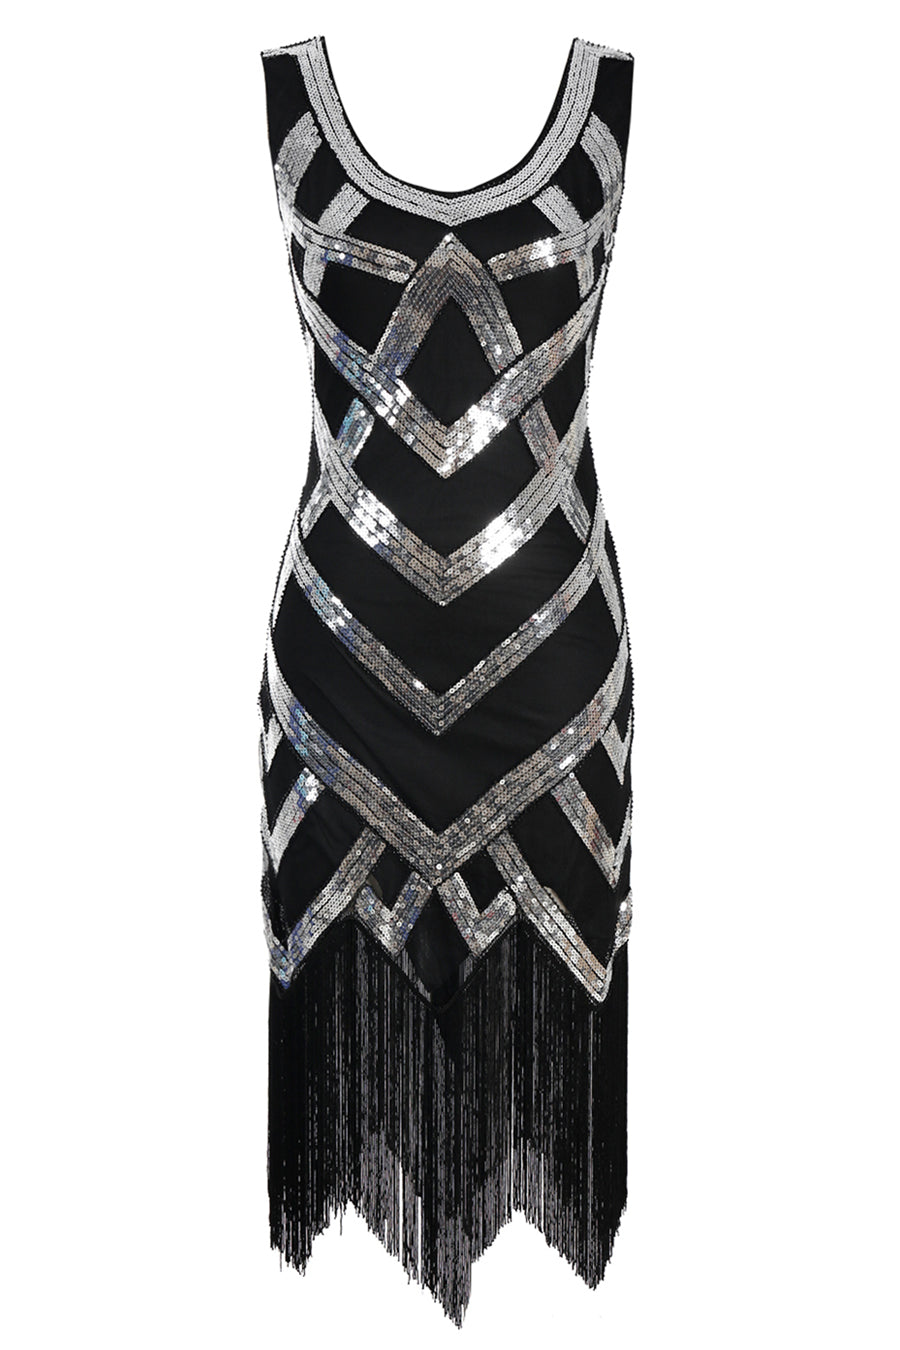 Silver Sequins 1920s Fringe Flapper Dress